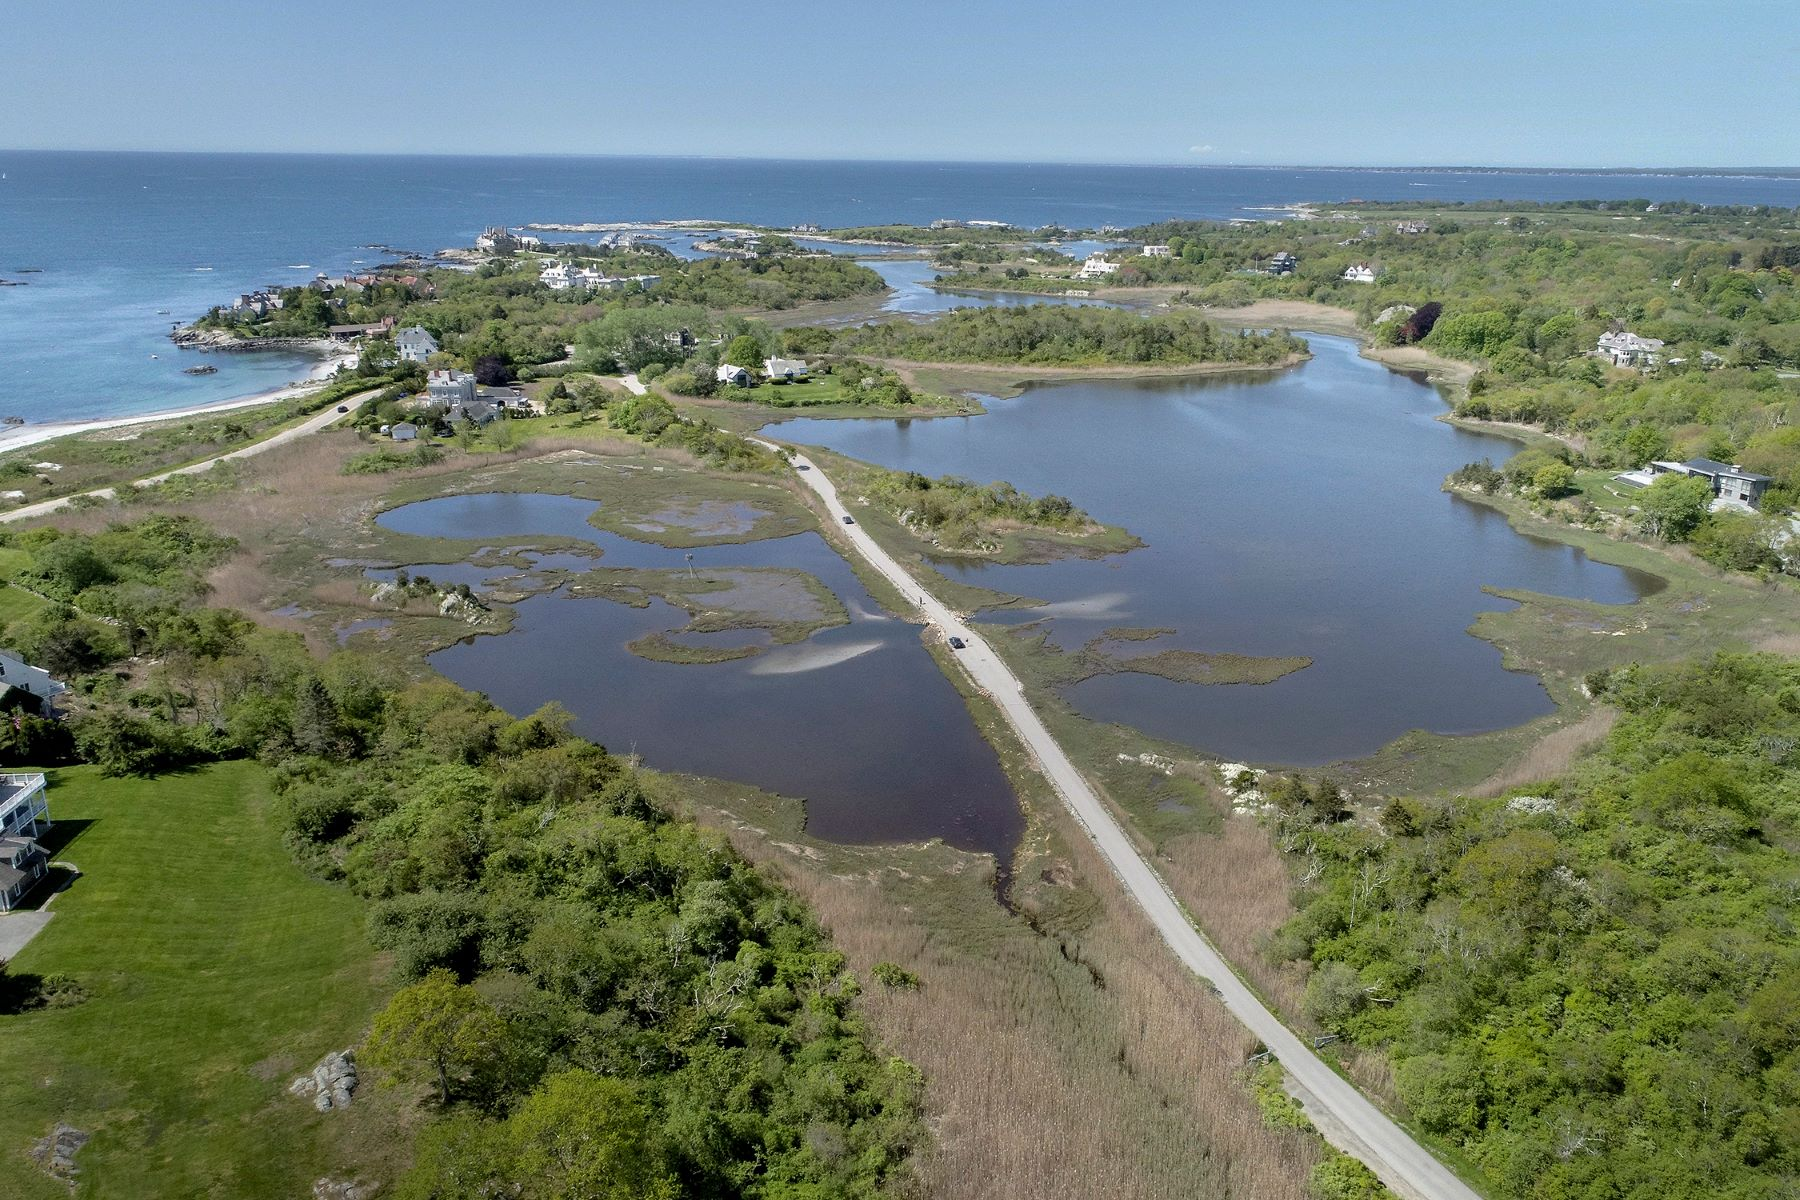 Single Family Homes for Sale at 'Green Pastures' 30 Hazard Road Newport, Rhode Island 02840 United States